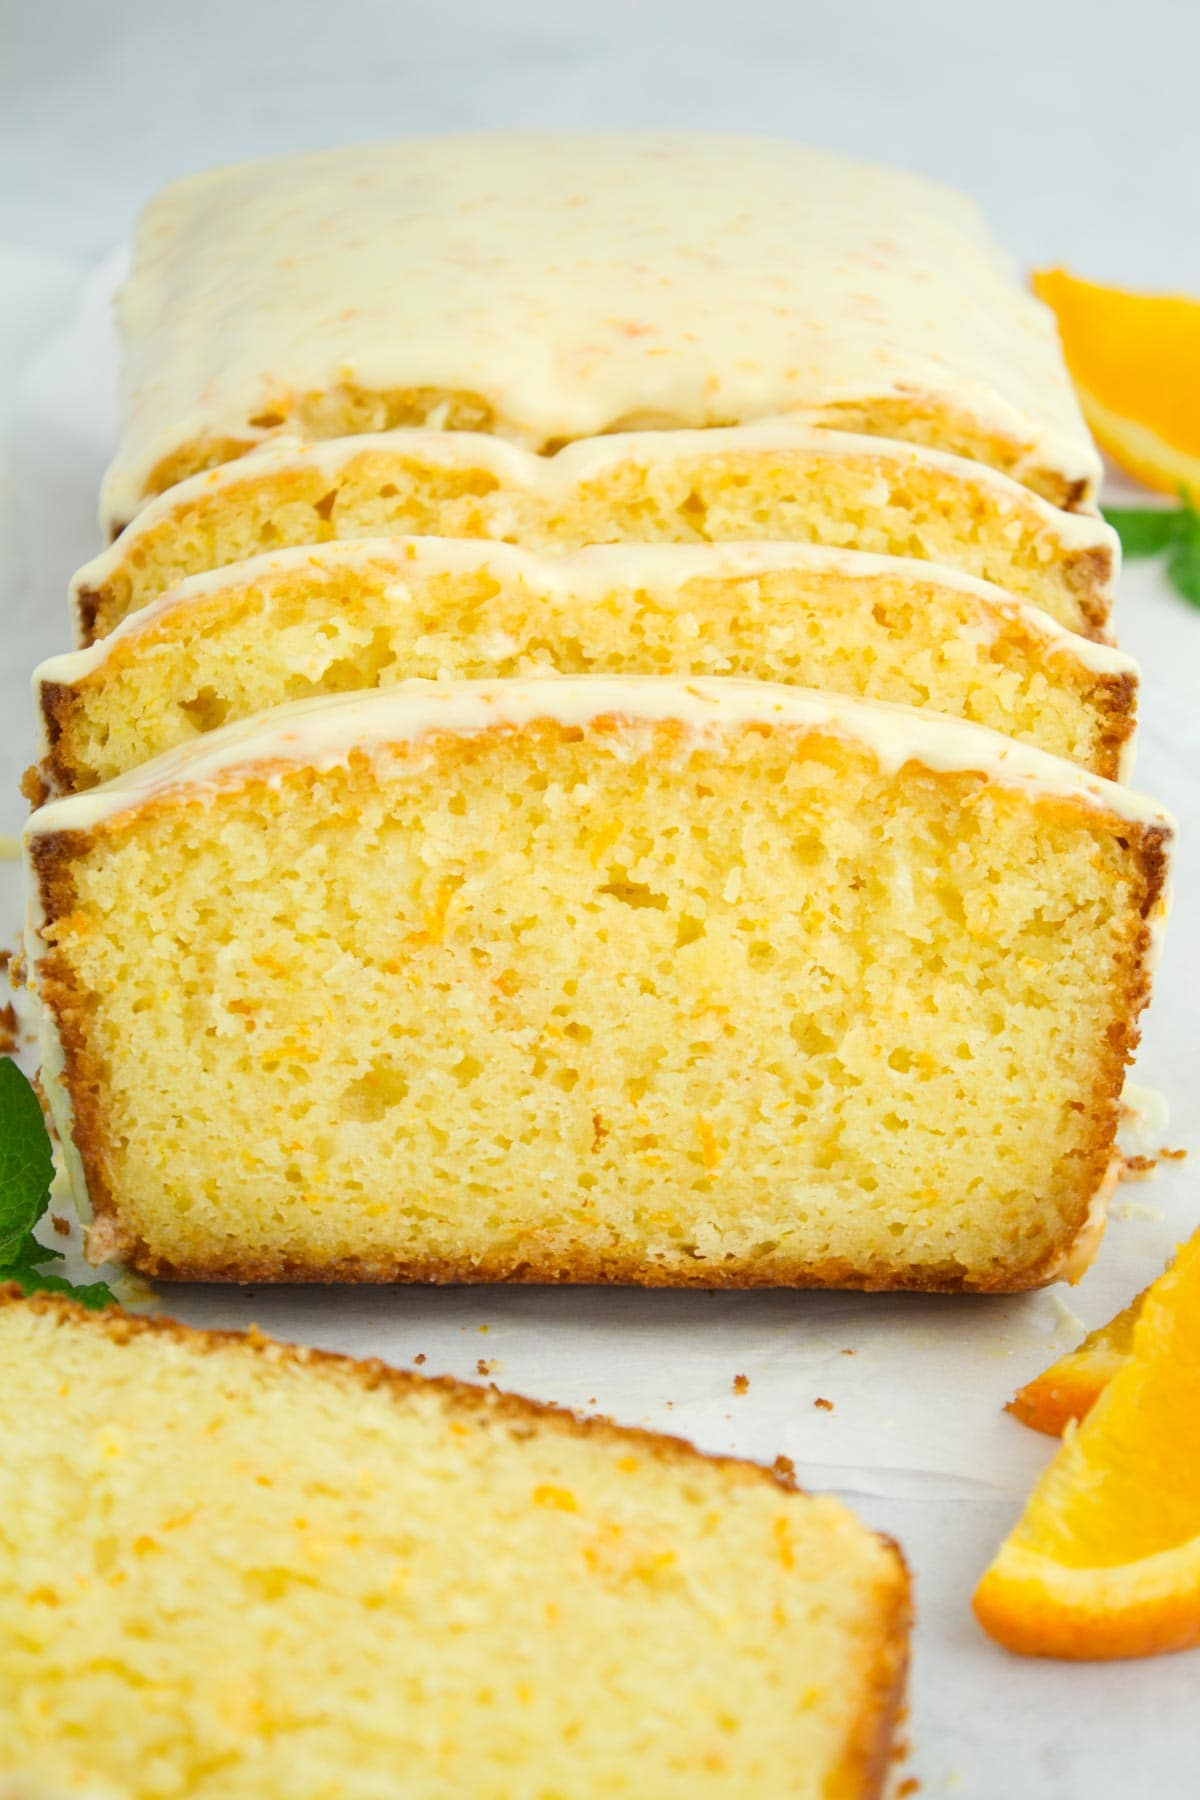 View of sliced loaf cake straight down the middle with oranges on side.